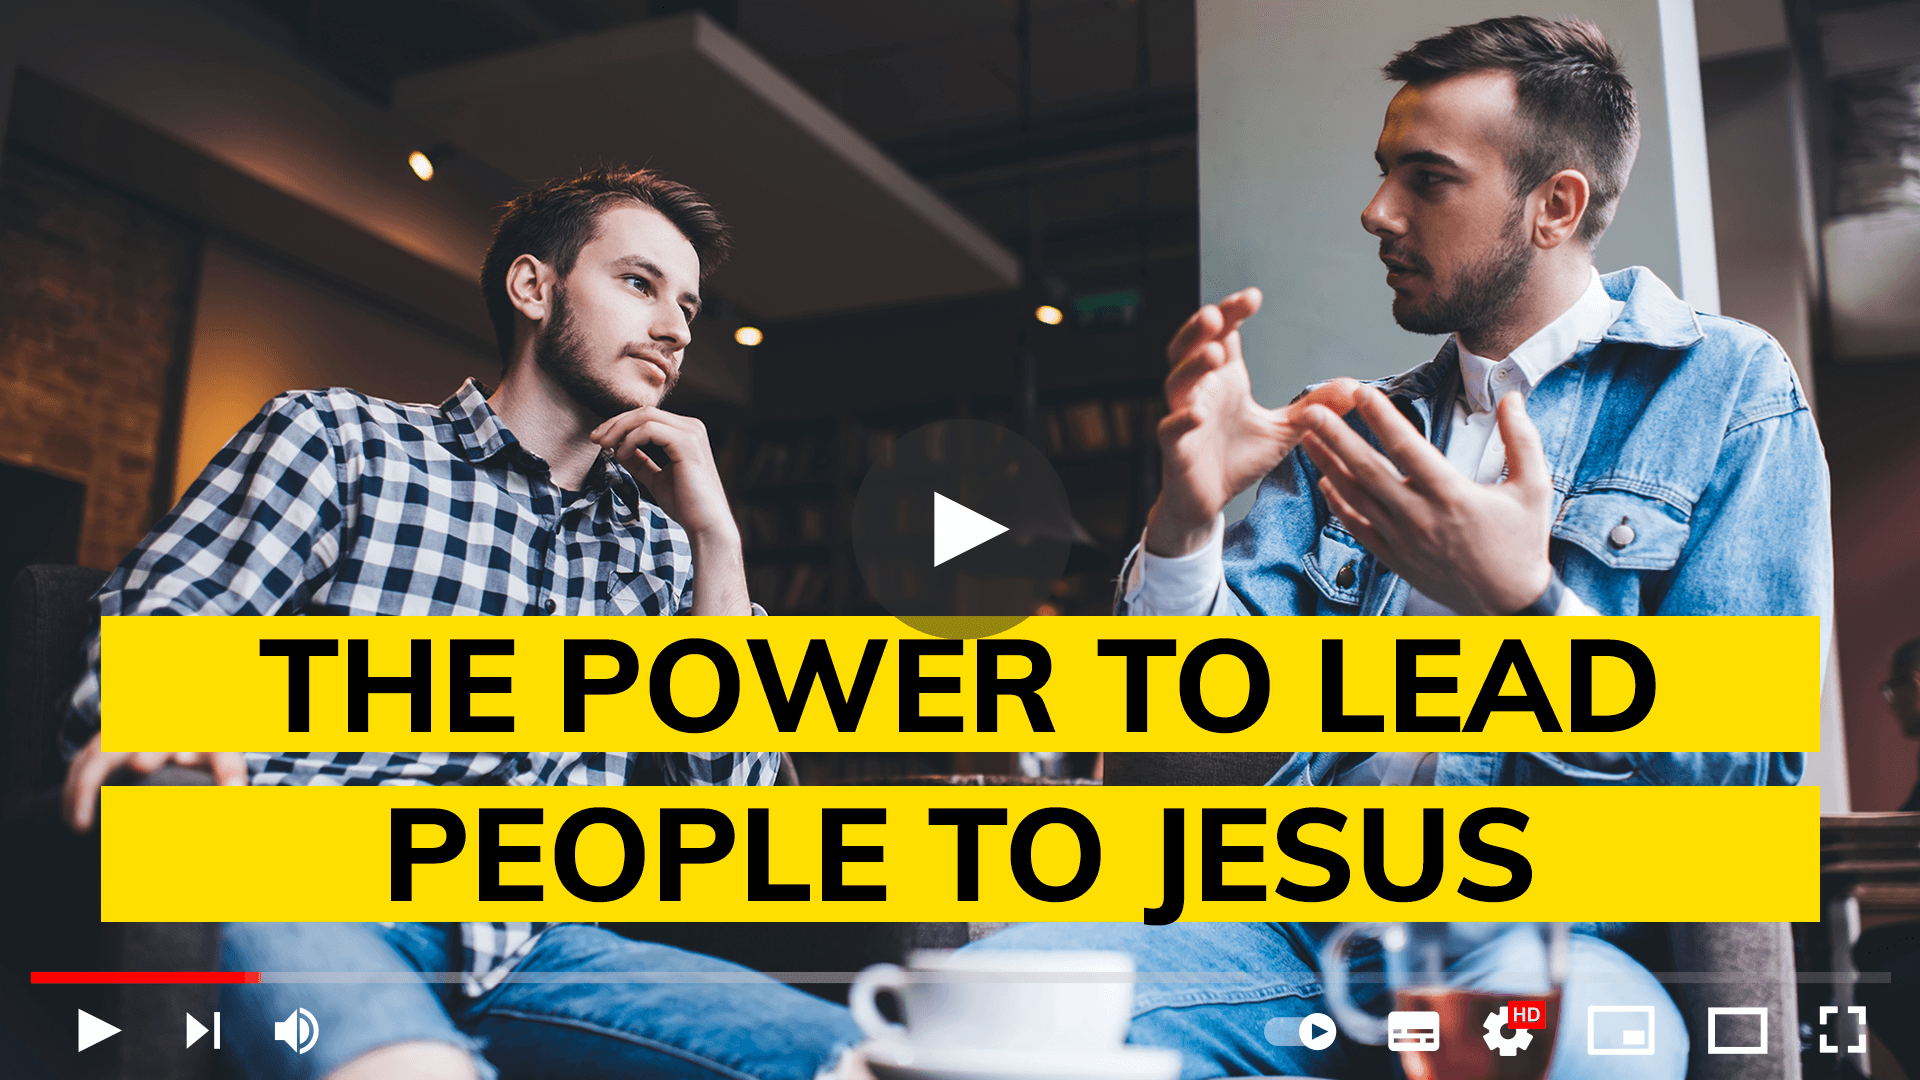 The power to lead people to Jesus